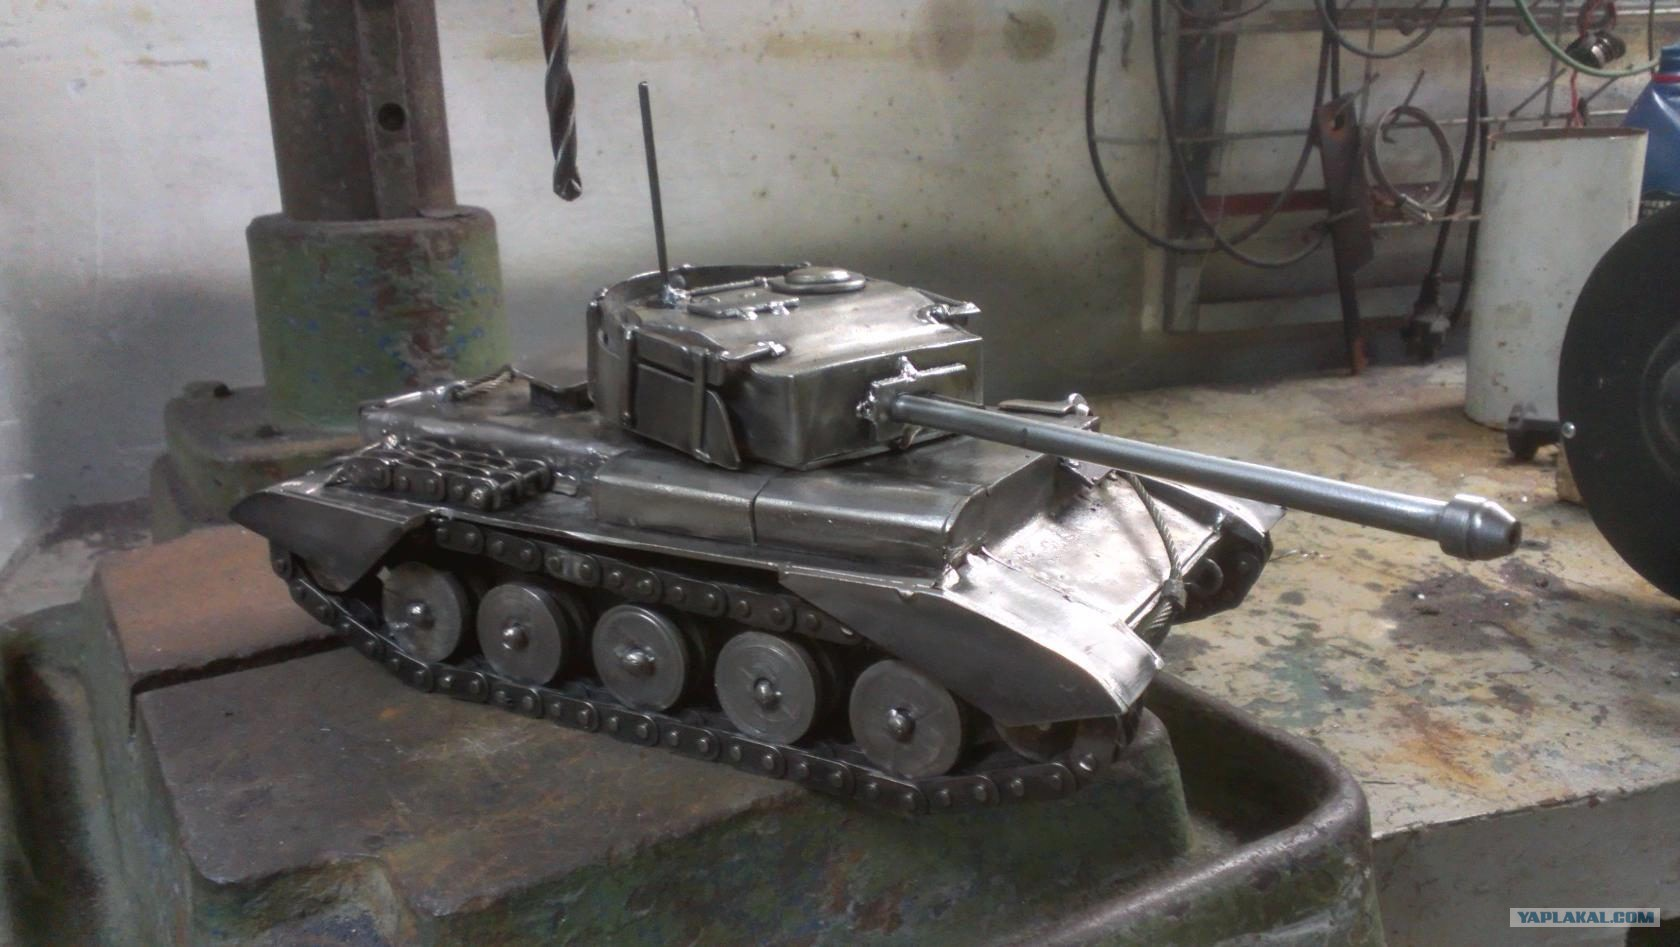 awesome metal tanks � the armored patrol